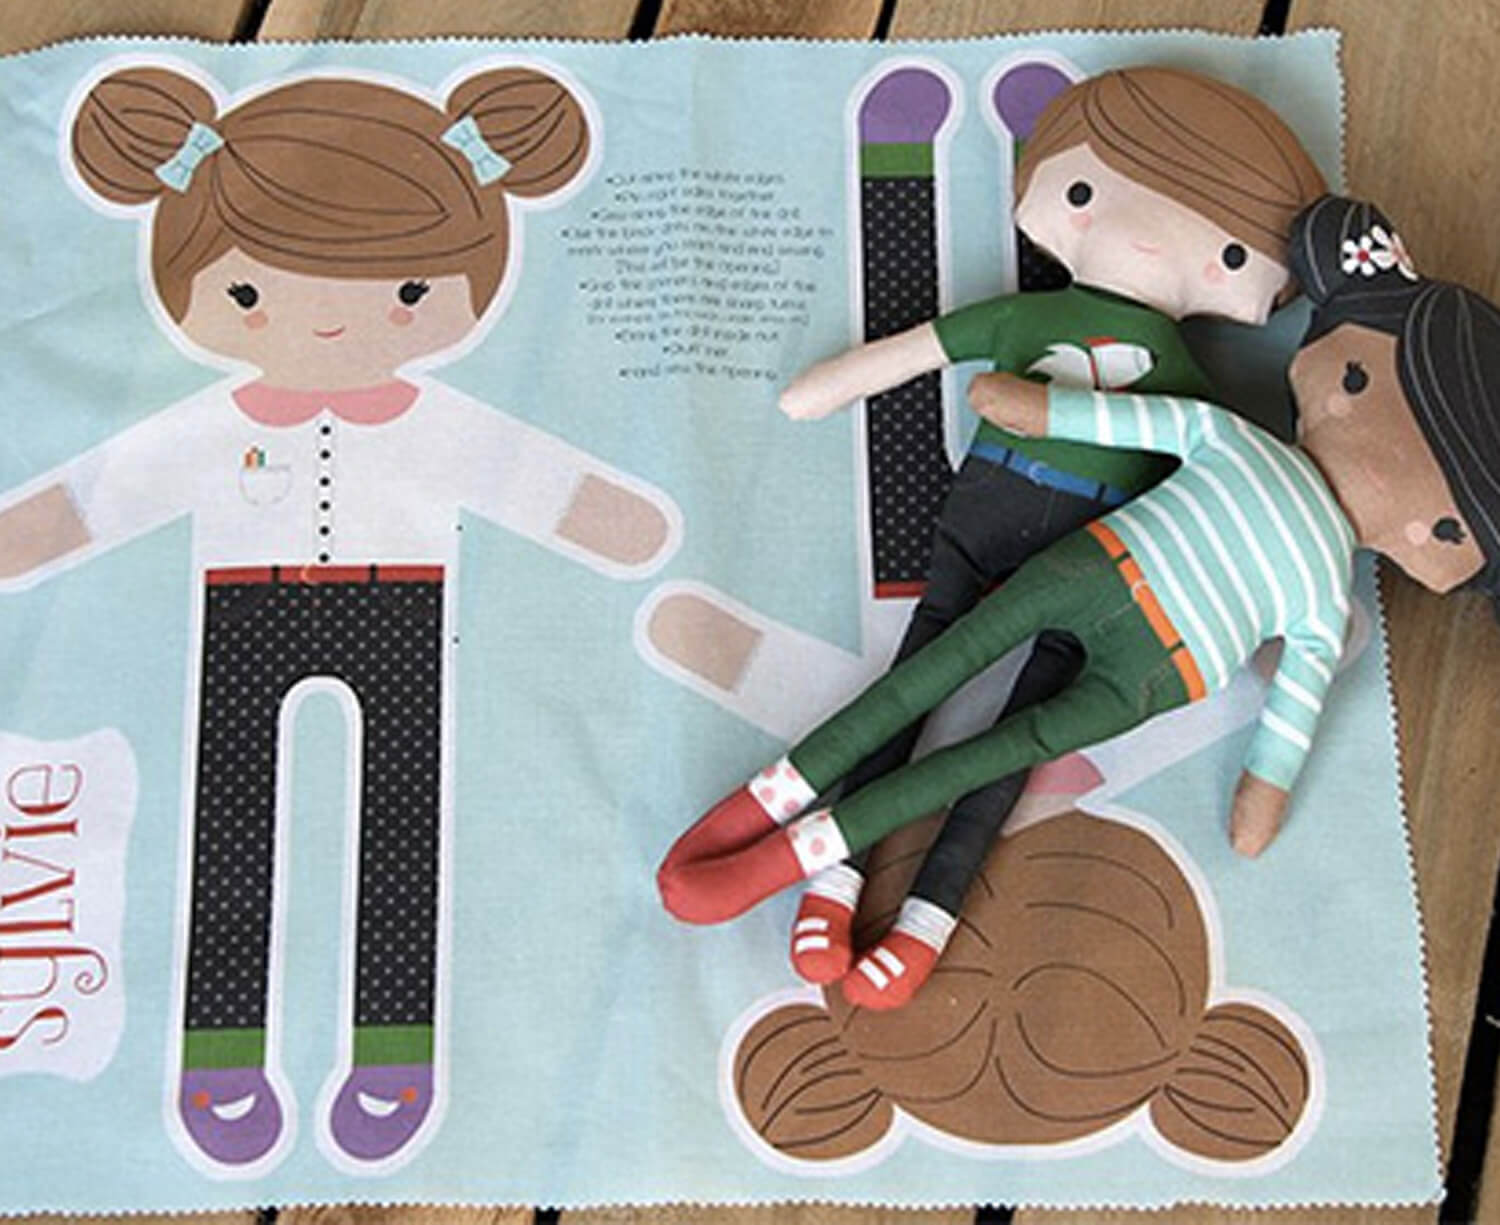 BLOG POST FOR SPOONFLOWER: DIY: CUSTOMIZE YOUR OWN CUT AND SEWDOLL